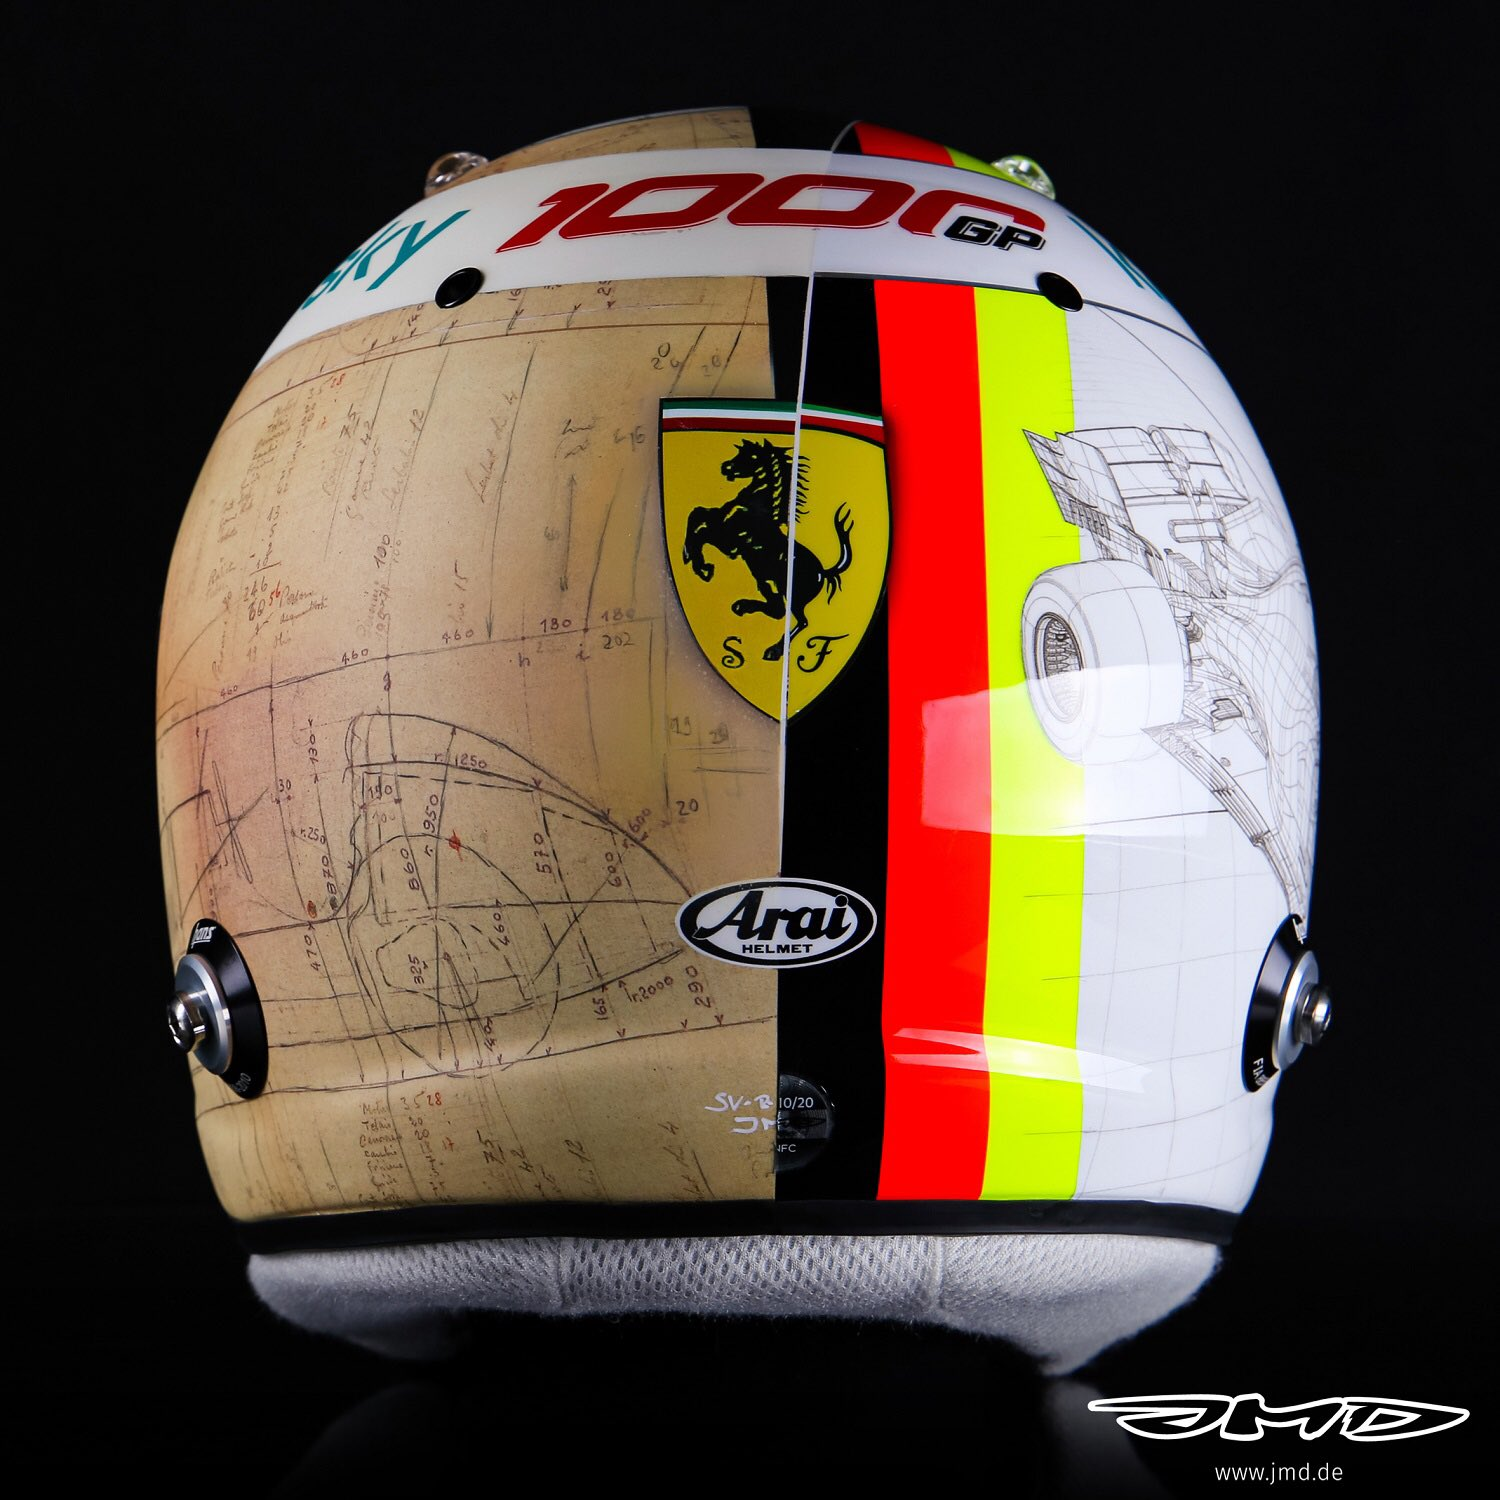 Formula 1 Special Helmet Designs Celebrating Ferrari And Italy For This Weekend S Tuscan Race